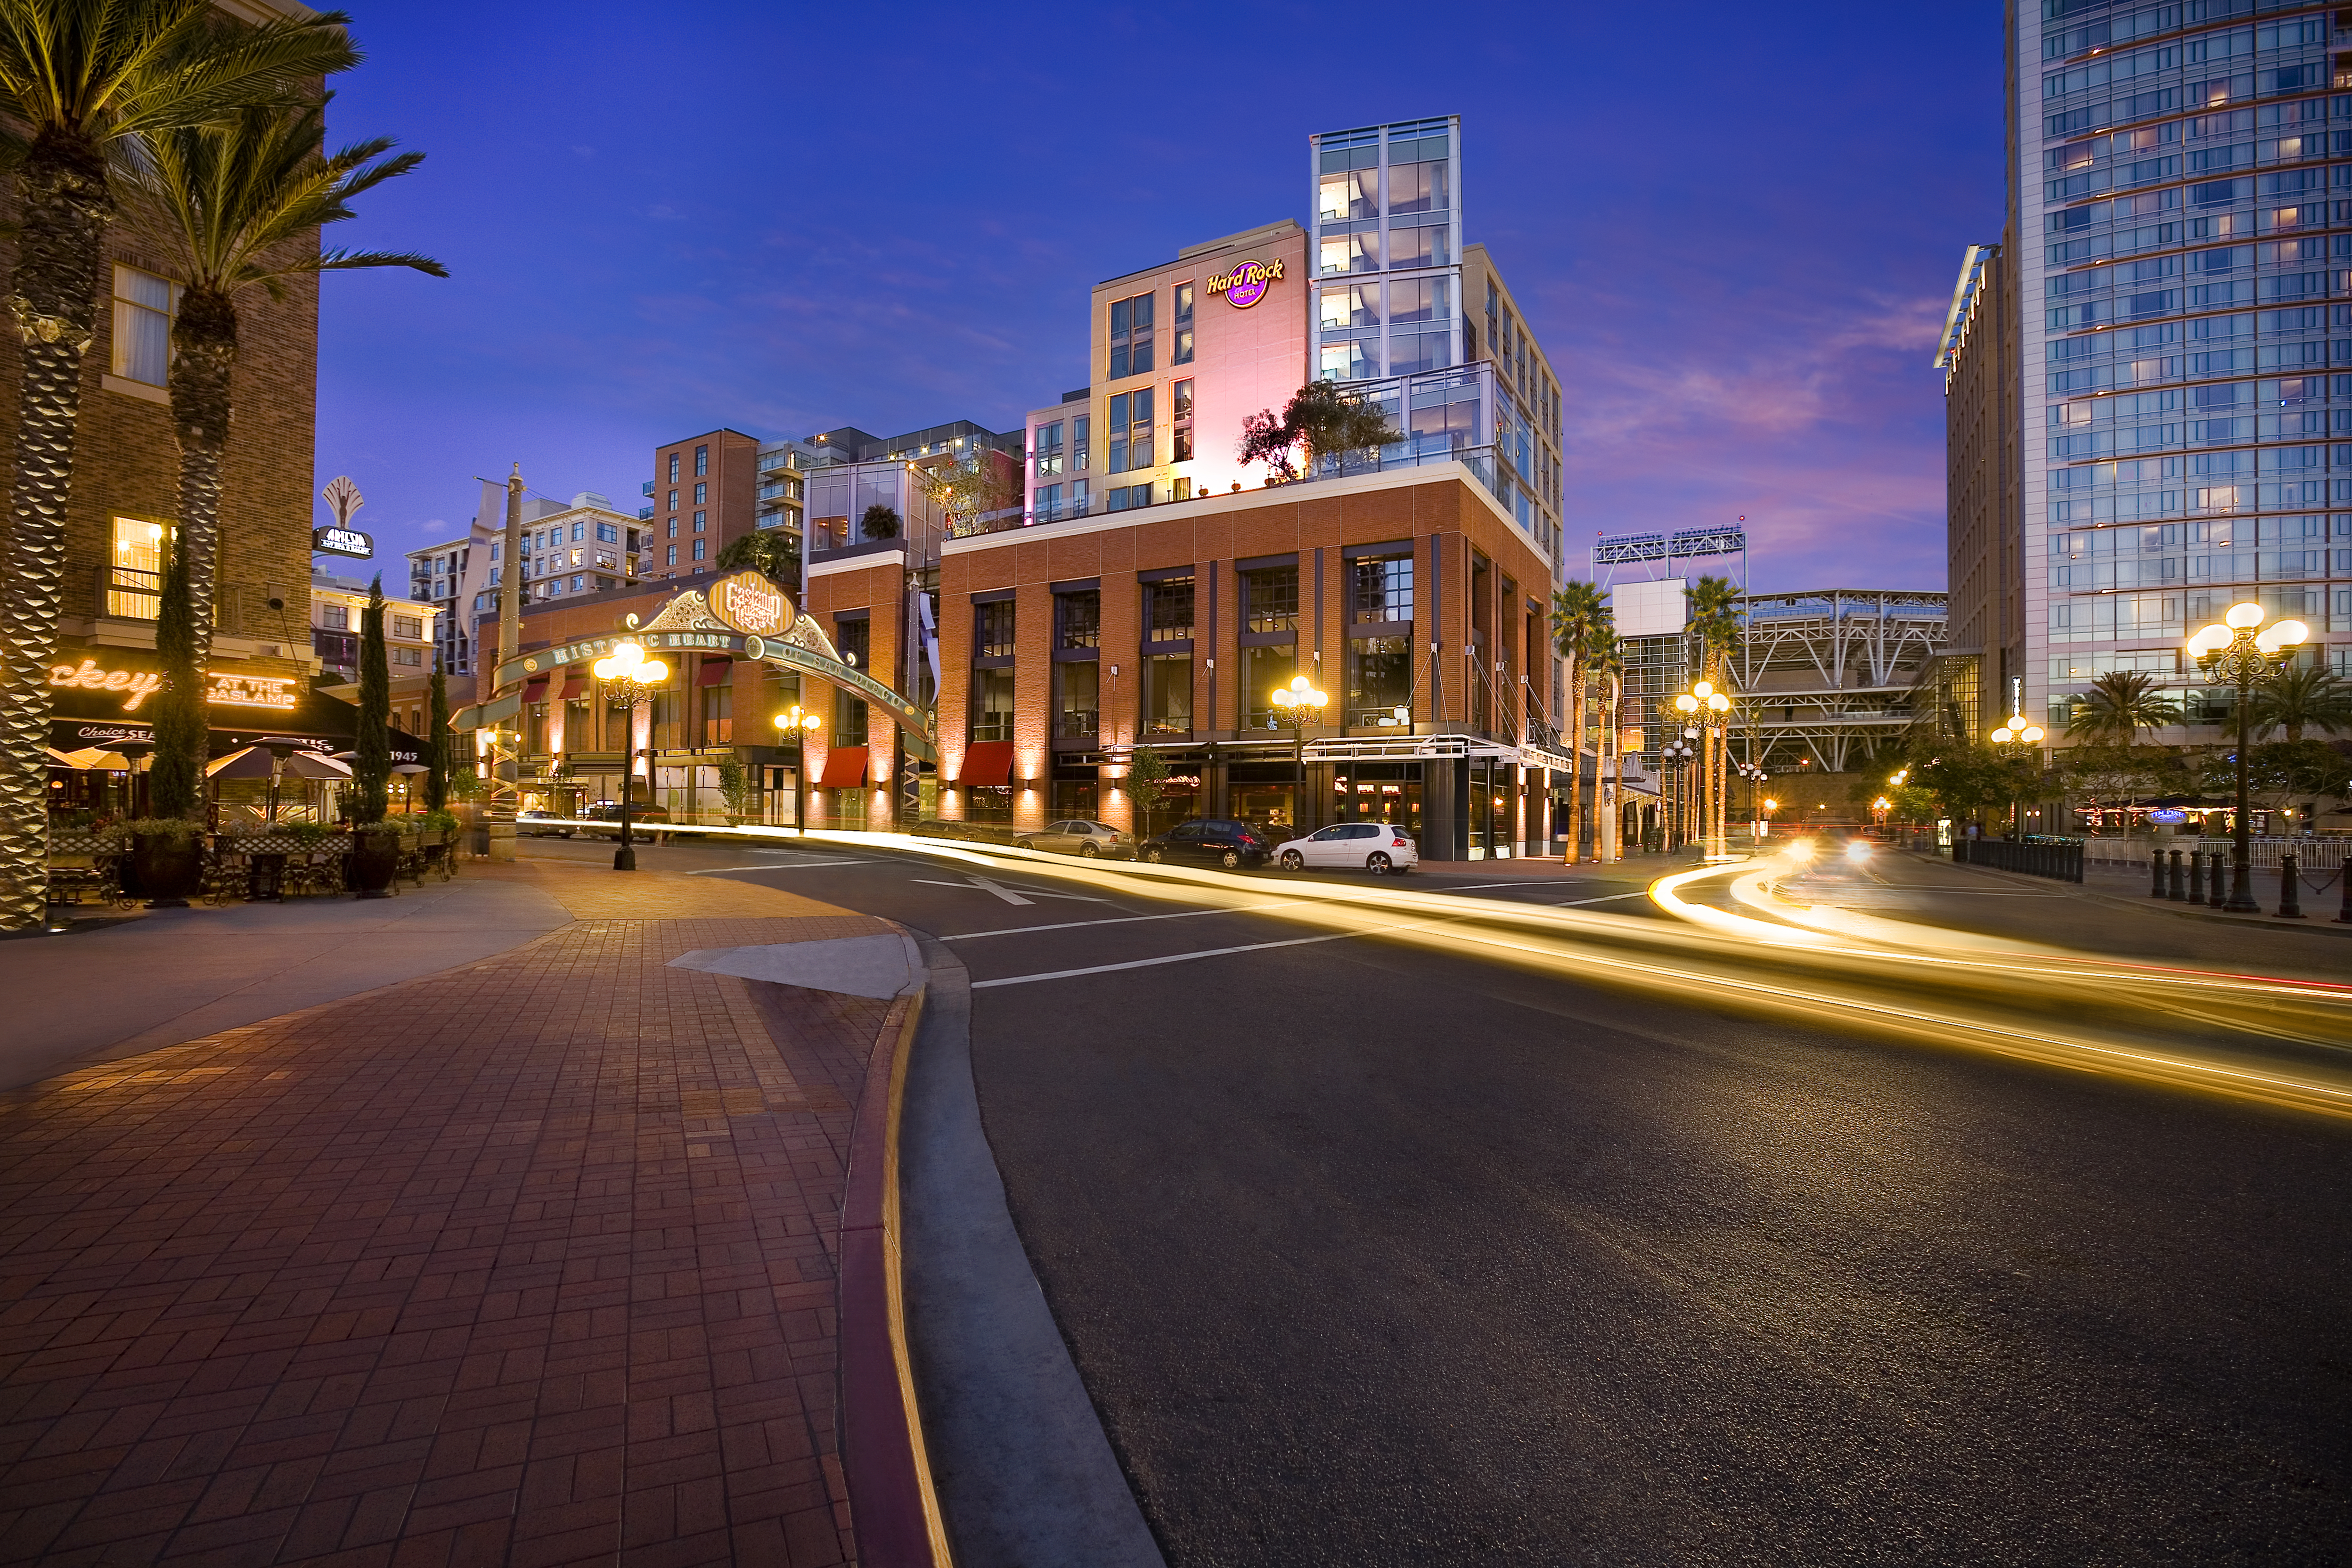 Hard Rock Hotel San Diego Is Stepping Up To The Plate To Welcome Baseball Fans Business Wire